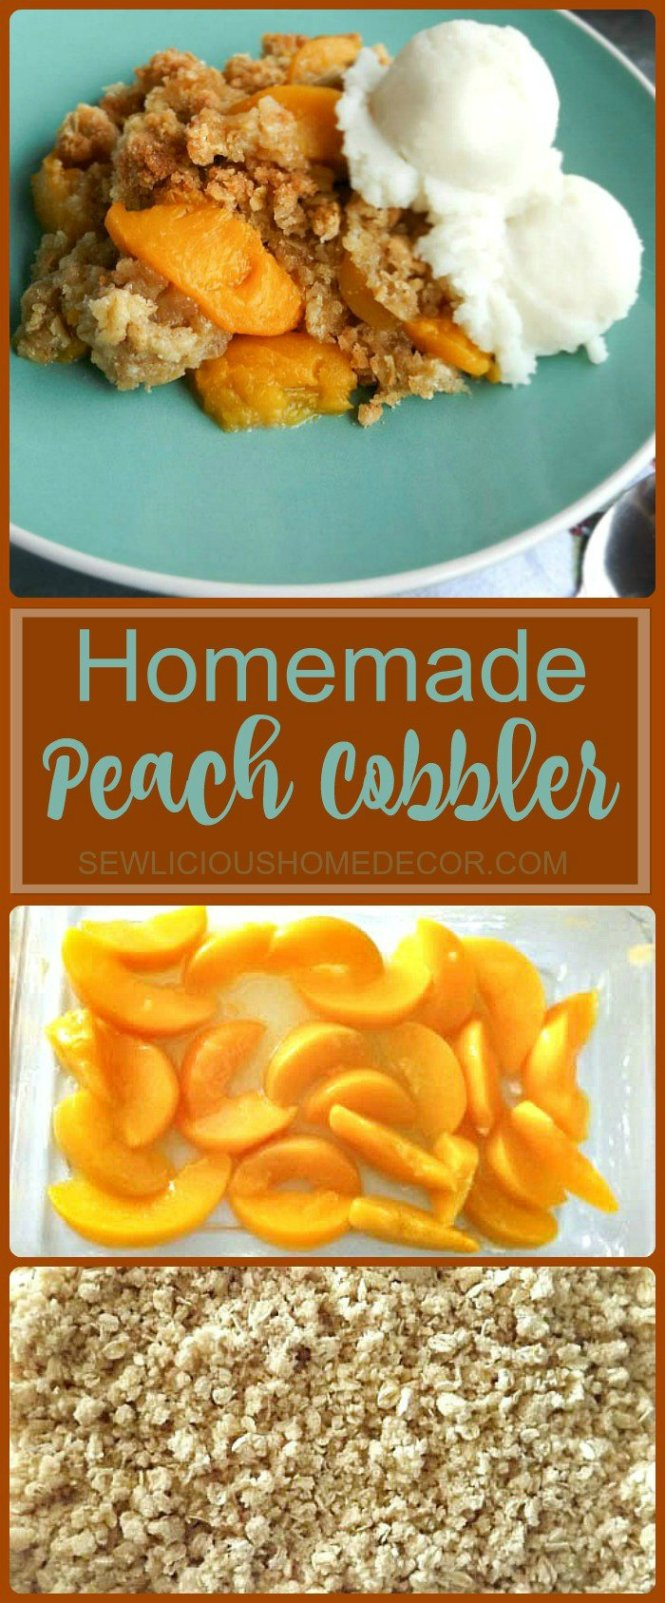 Homemade Peach Cobbler sewlicioushomedecor.com